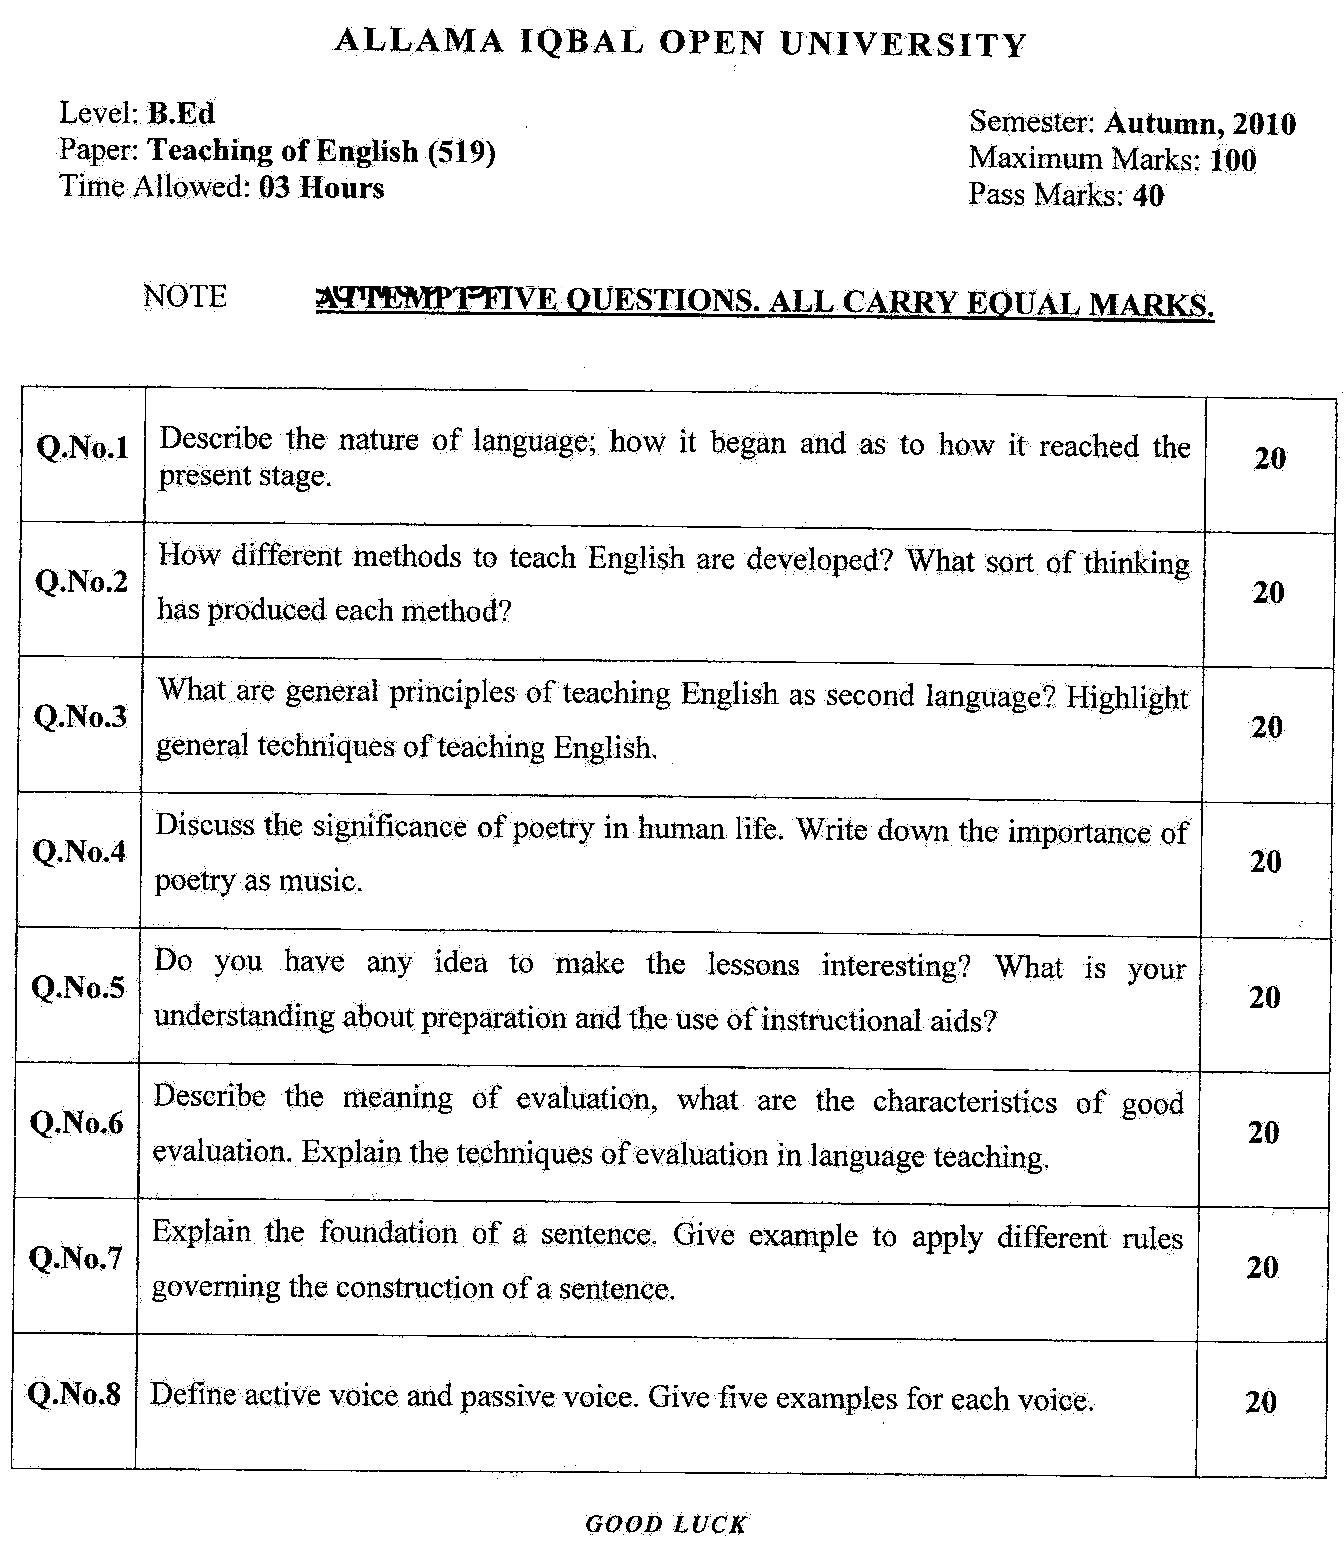 Best Descriptive Essay Stop Teaching The Five Paragraph Essay     Stop Teaching The  Five Paragraph Essay Allama Iqbal Open University  Academic Essay Sample also Dickinson Essay Essay On Allama Iqbal Ideology Of Essay In English For Primary To  Essay Catcher In The Rye